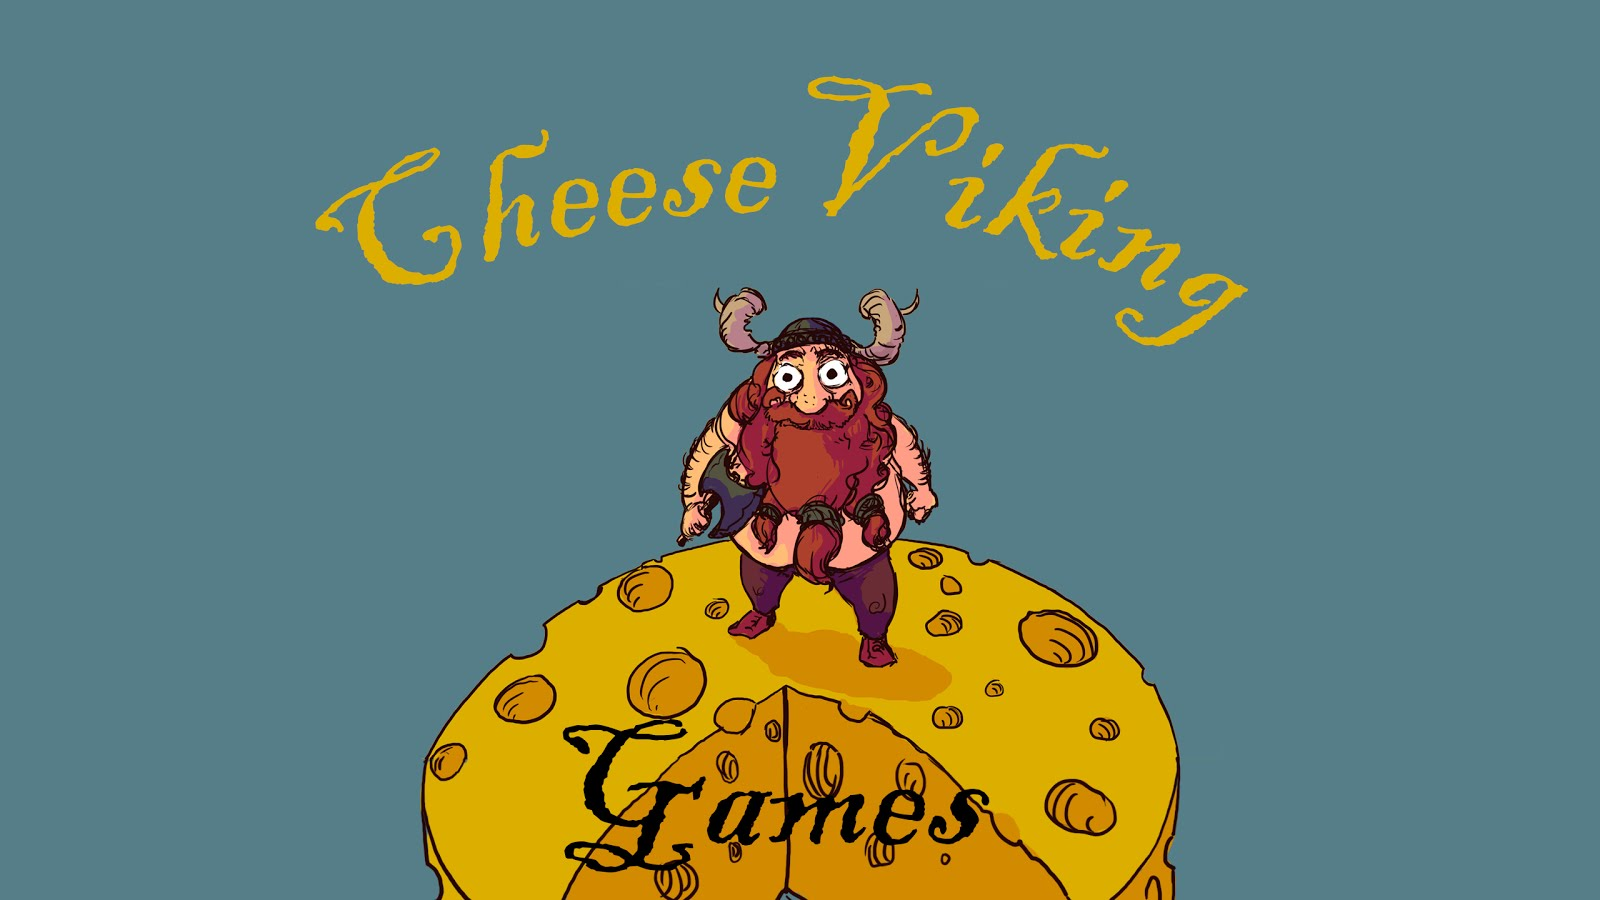 CheeseViking Games